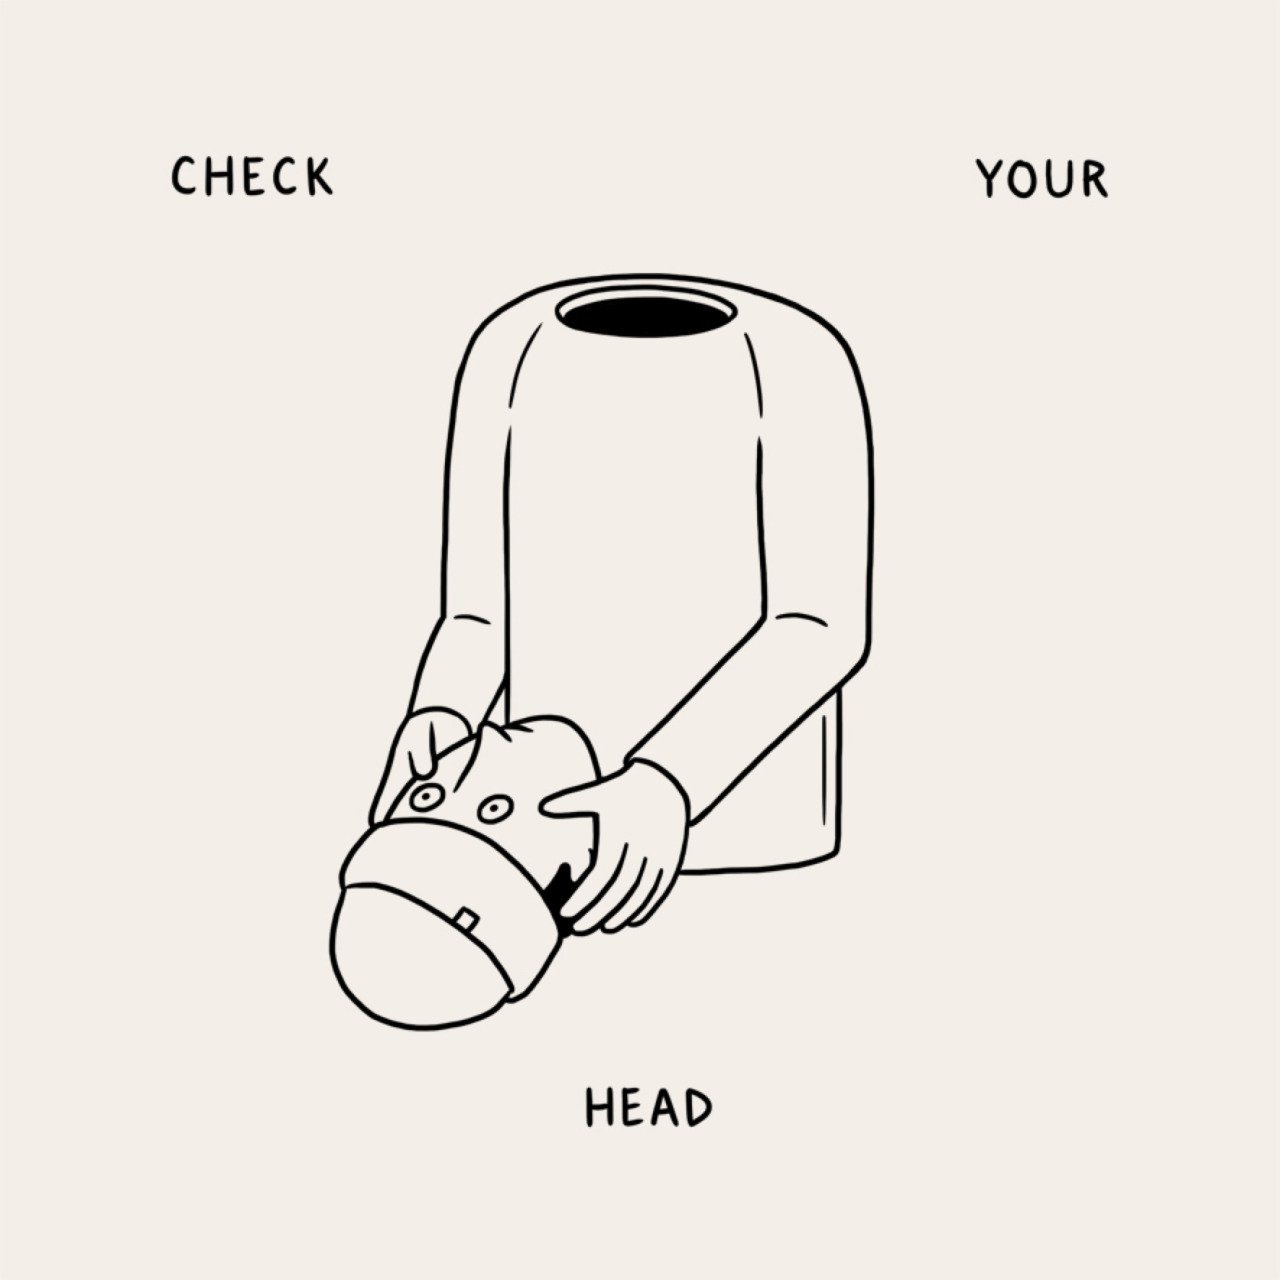 Le brillanti illustrazioni dell'artista Matt Blease | Collater.al 2